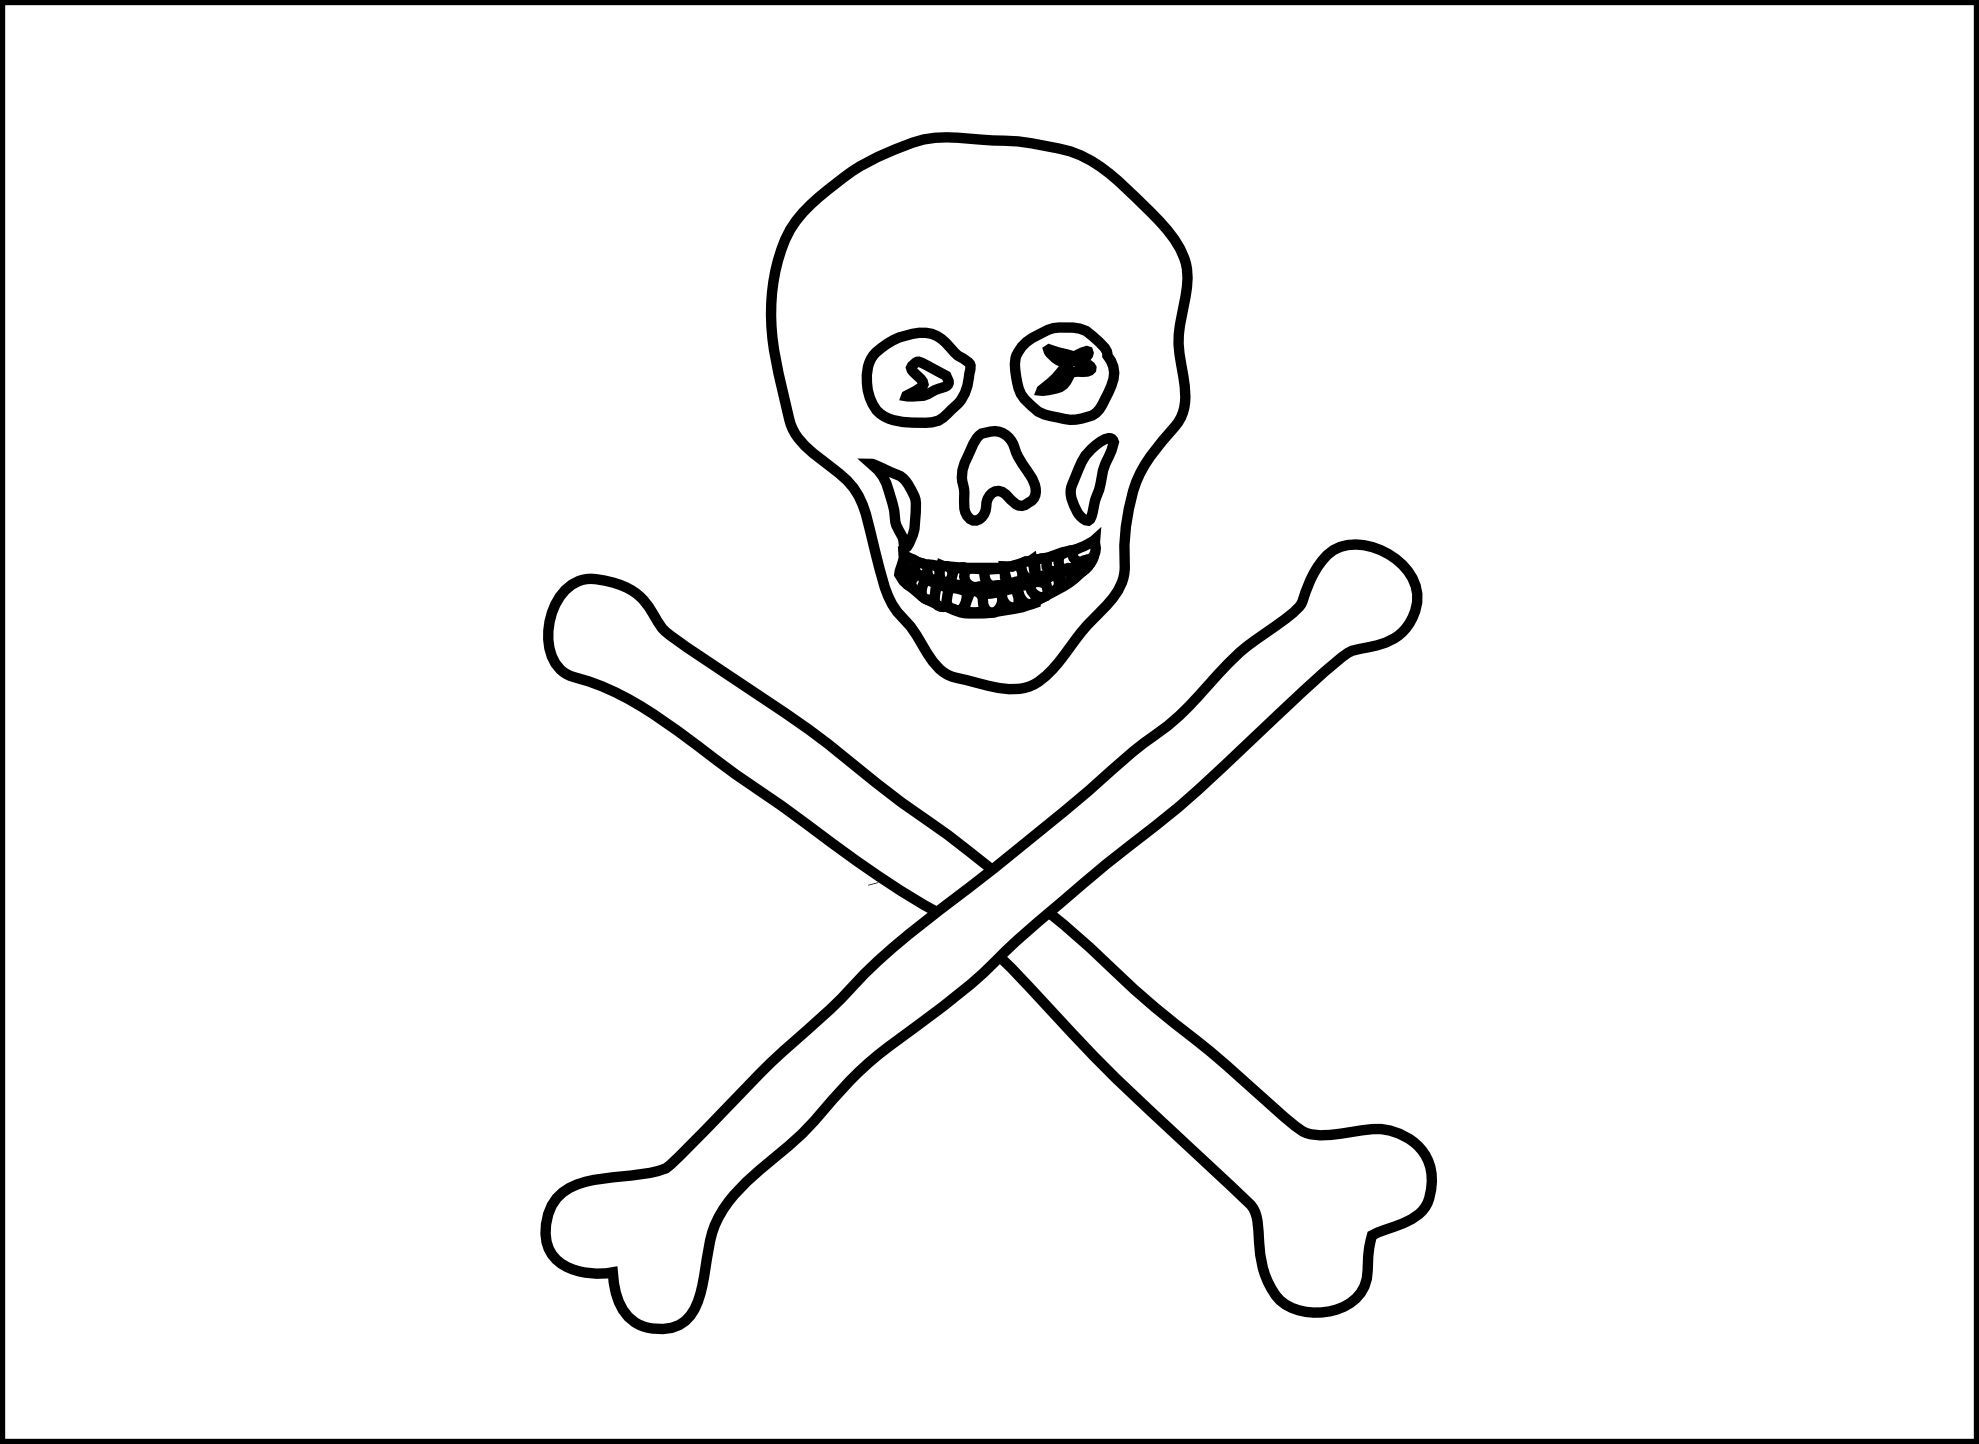 Jolly Roger Flag Coloring Page